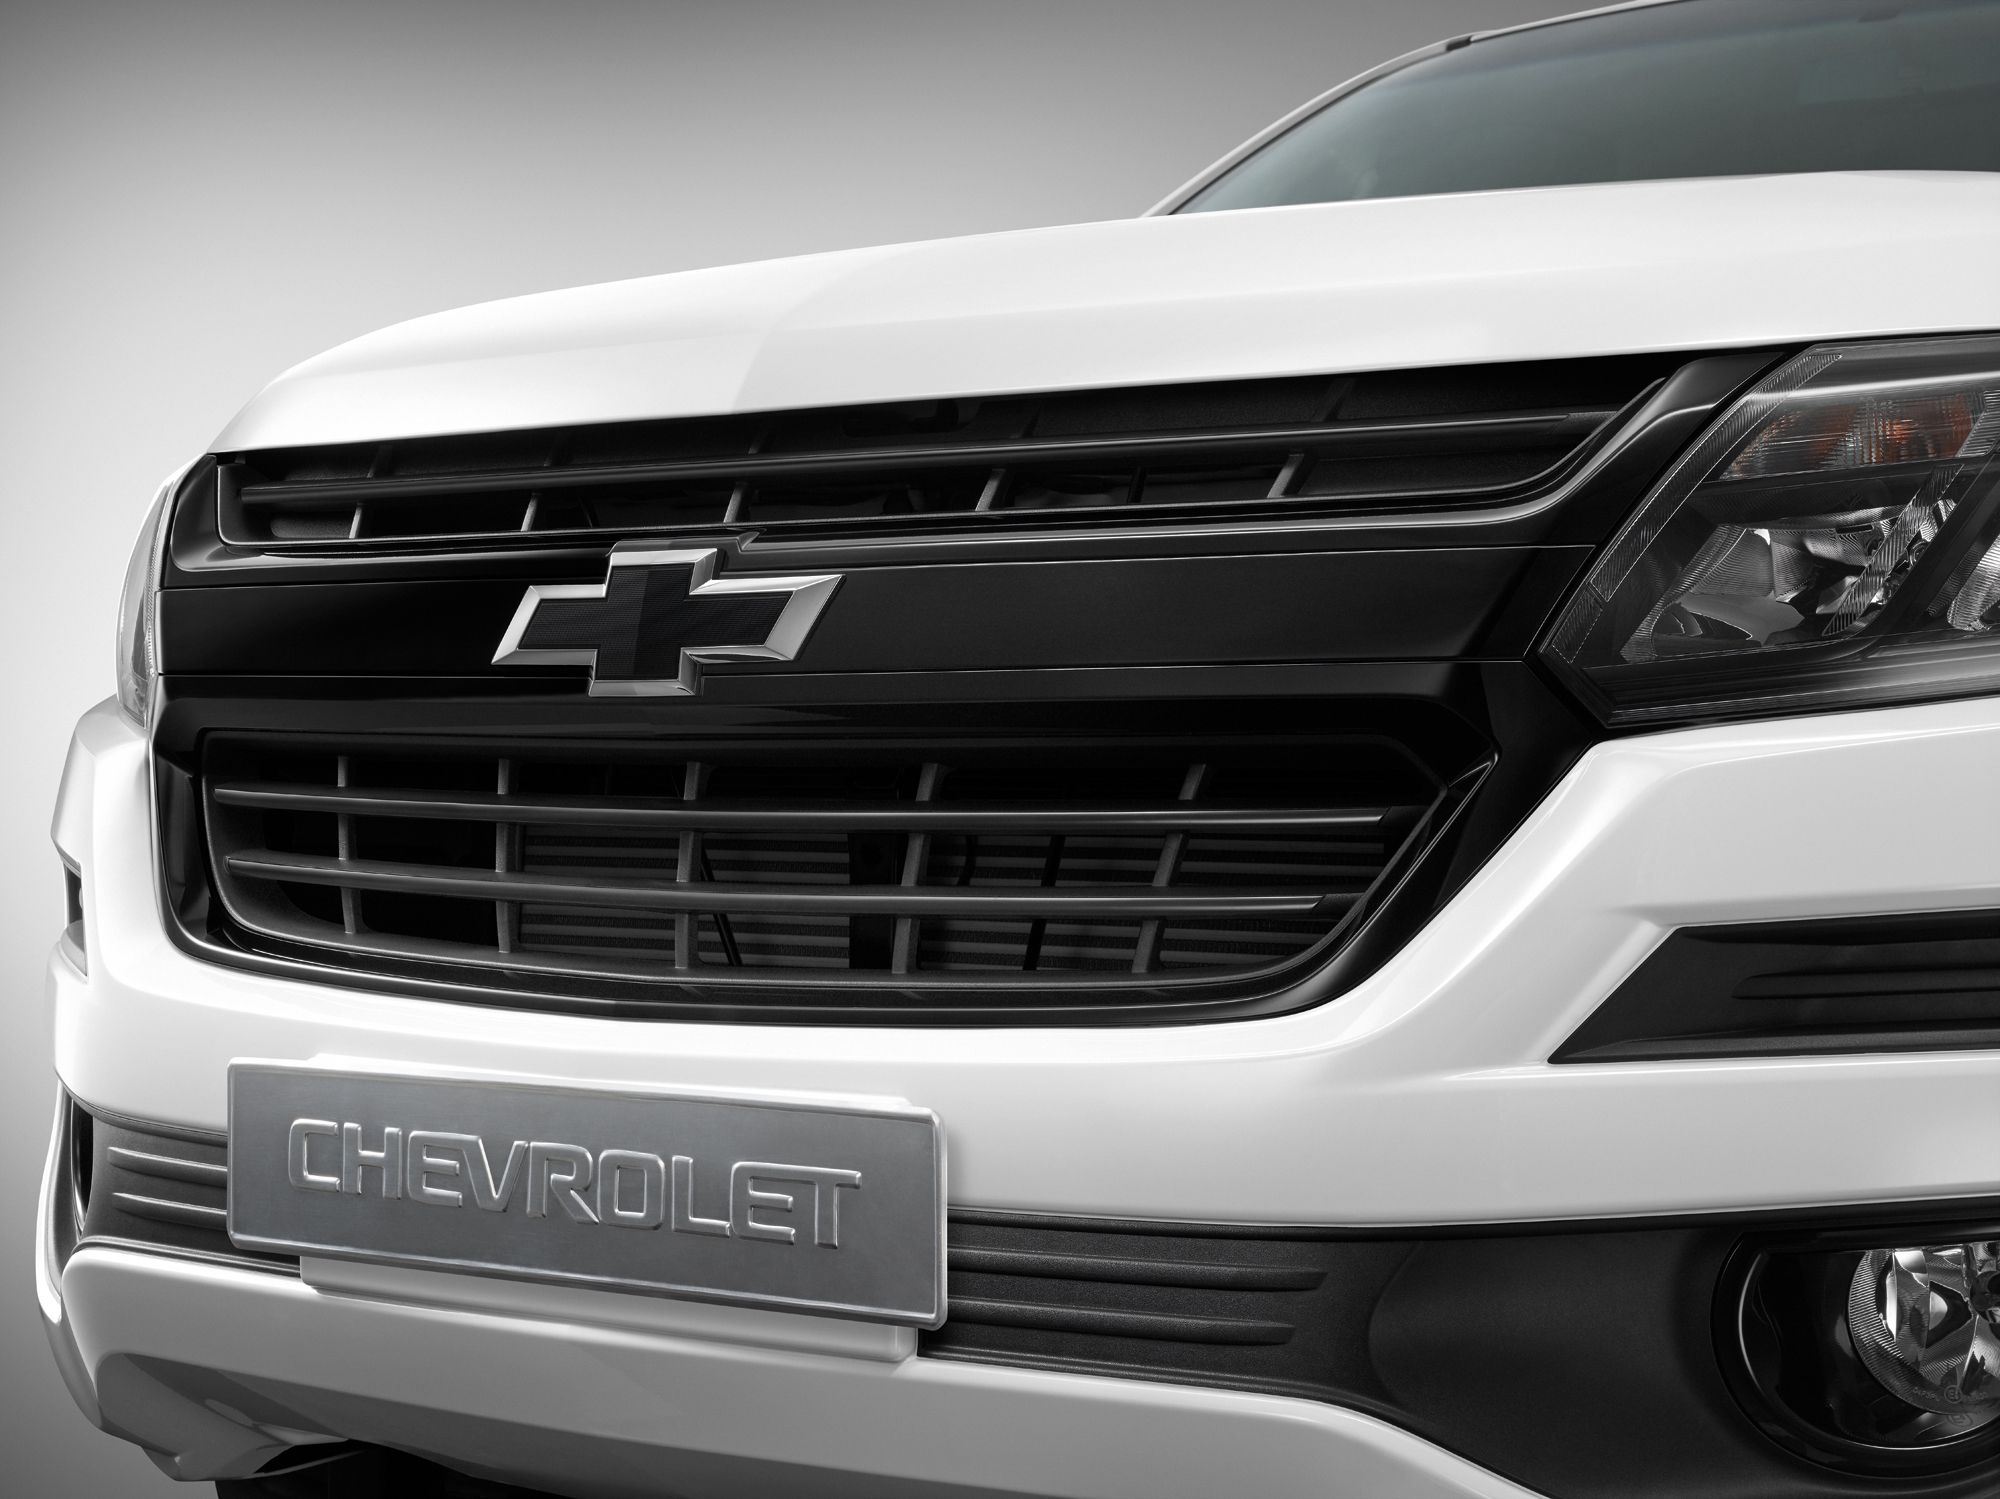 Chevrolet Colorado Trail Boss_front detail